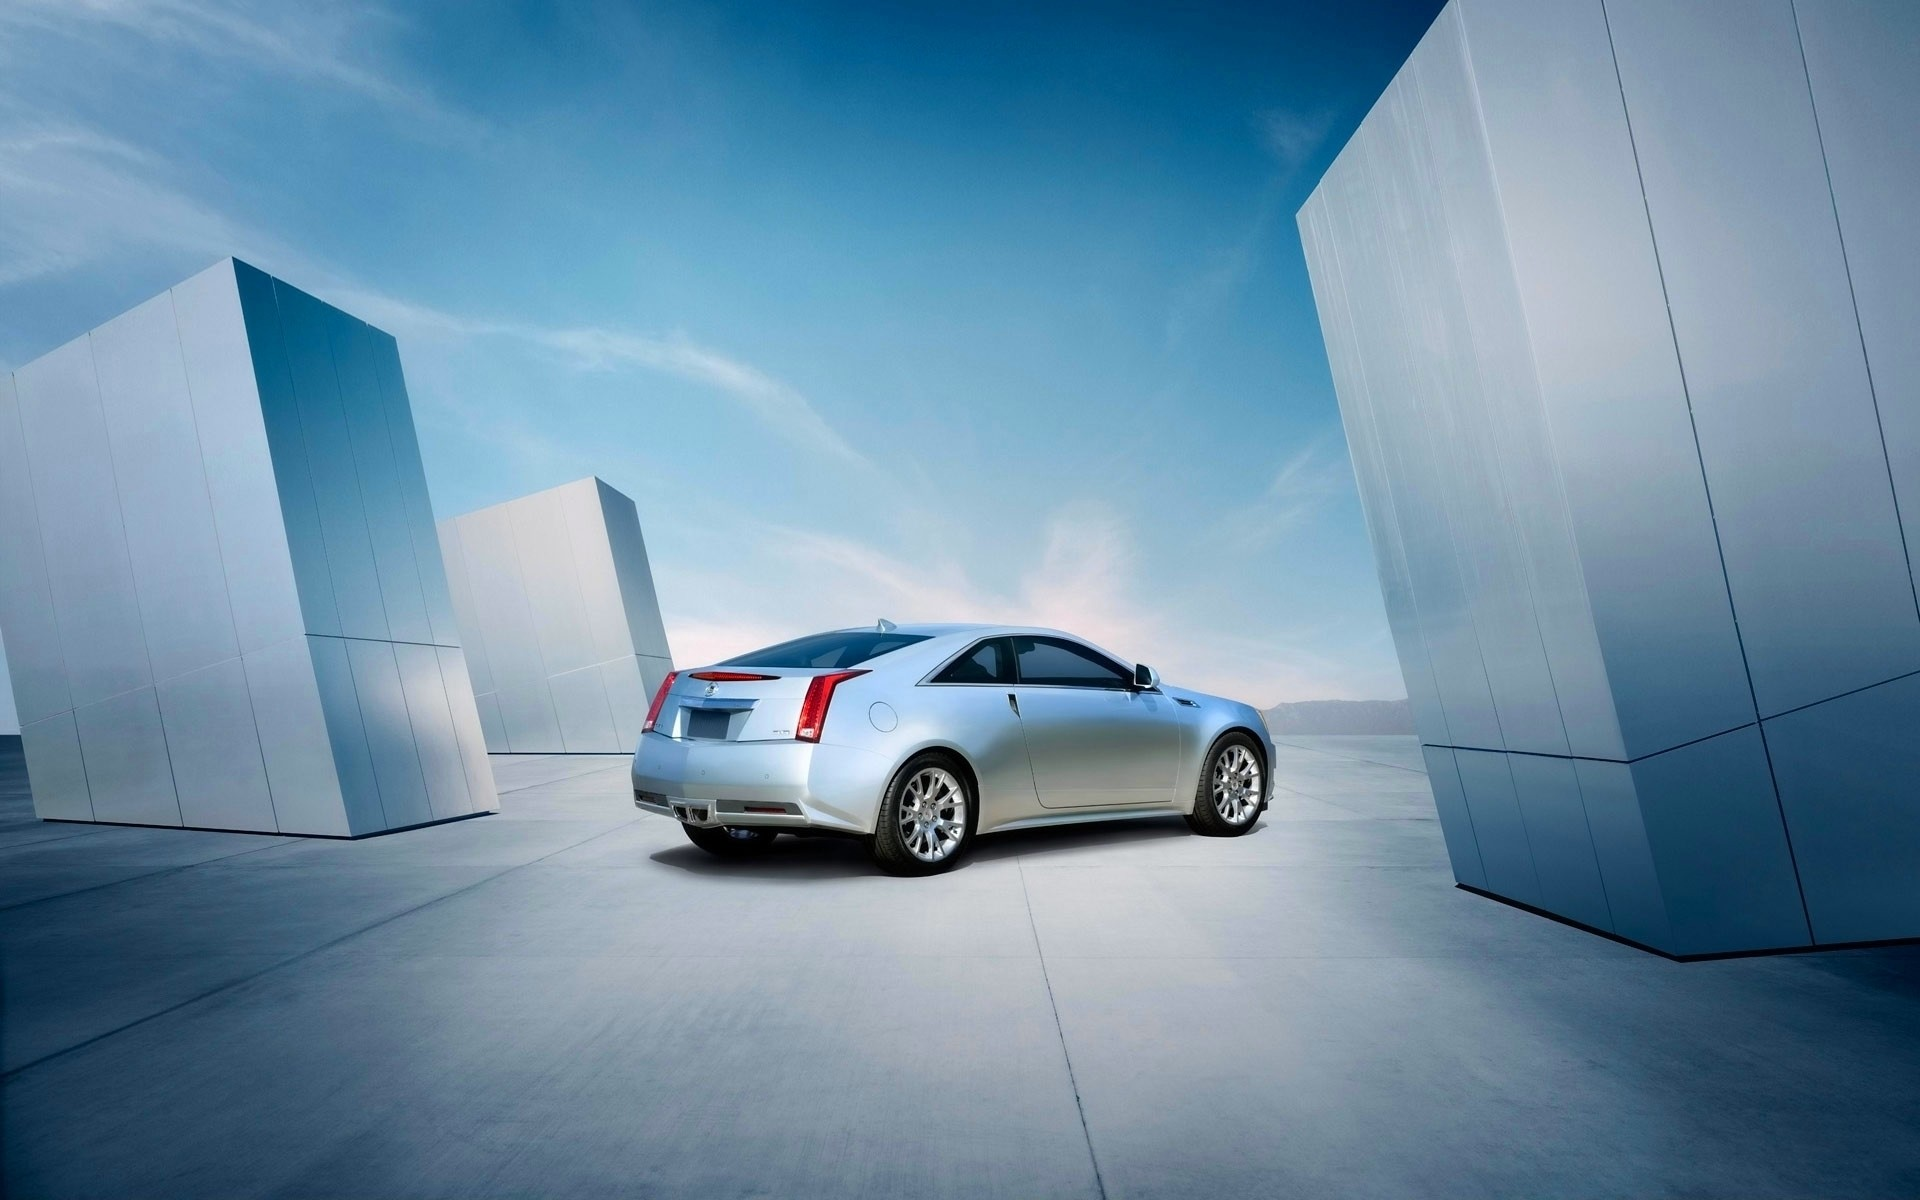 cadillac car business modern vehicle transportation system cadillac cts sport cars coupe cars